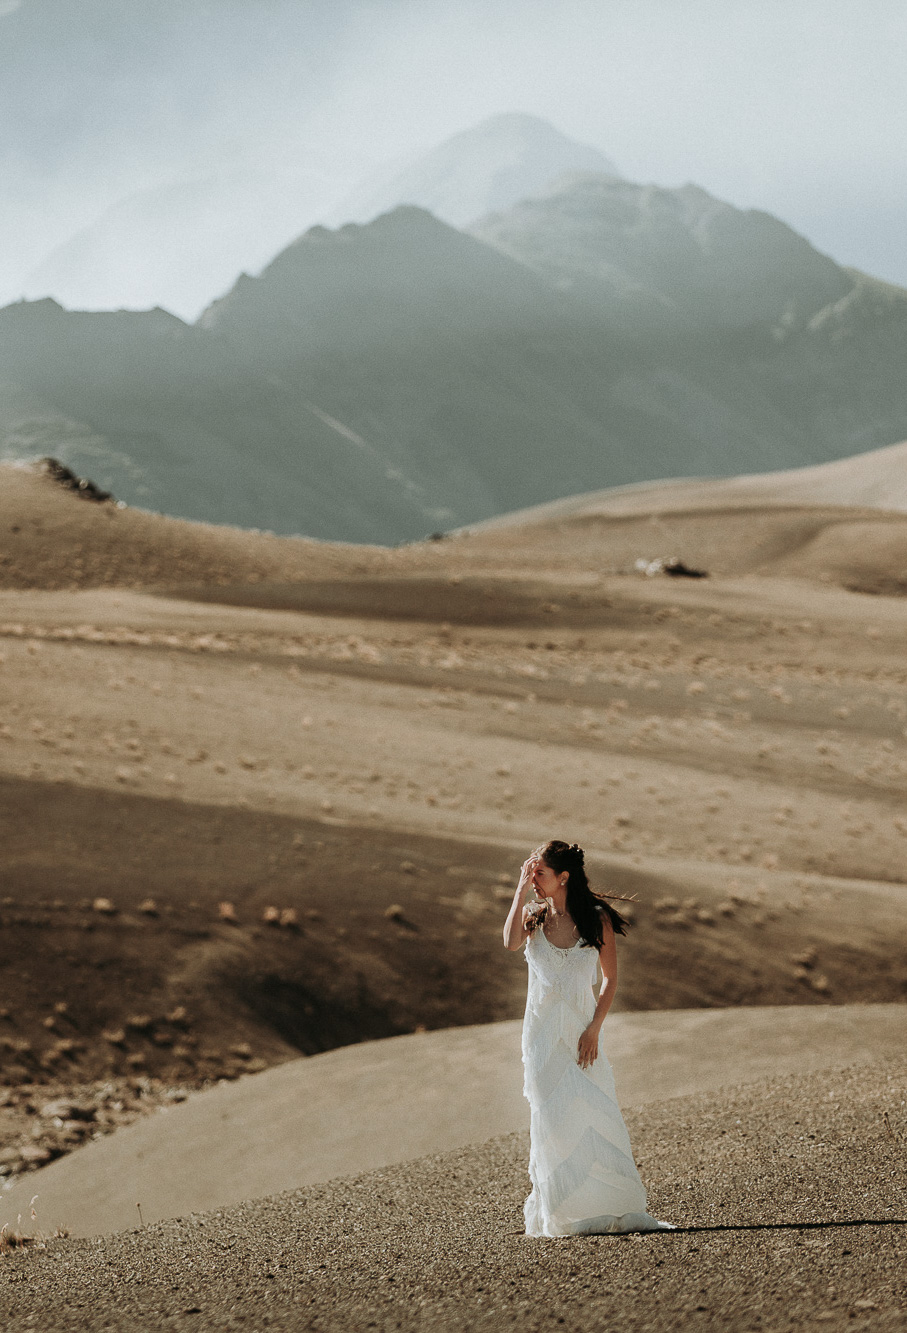 elopement photographer chile 4 Adventure Pricing Chile